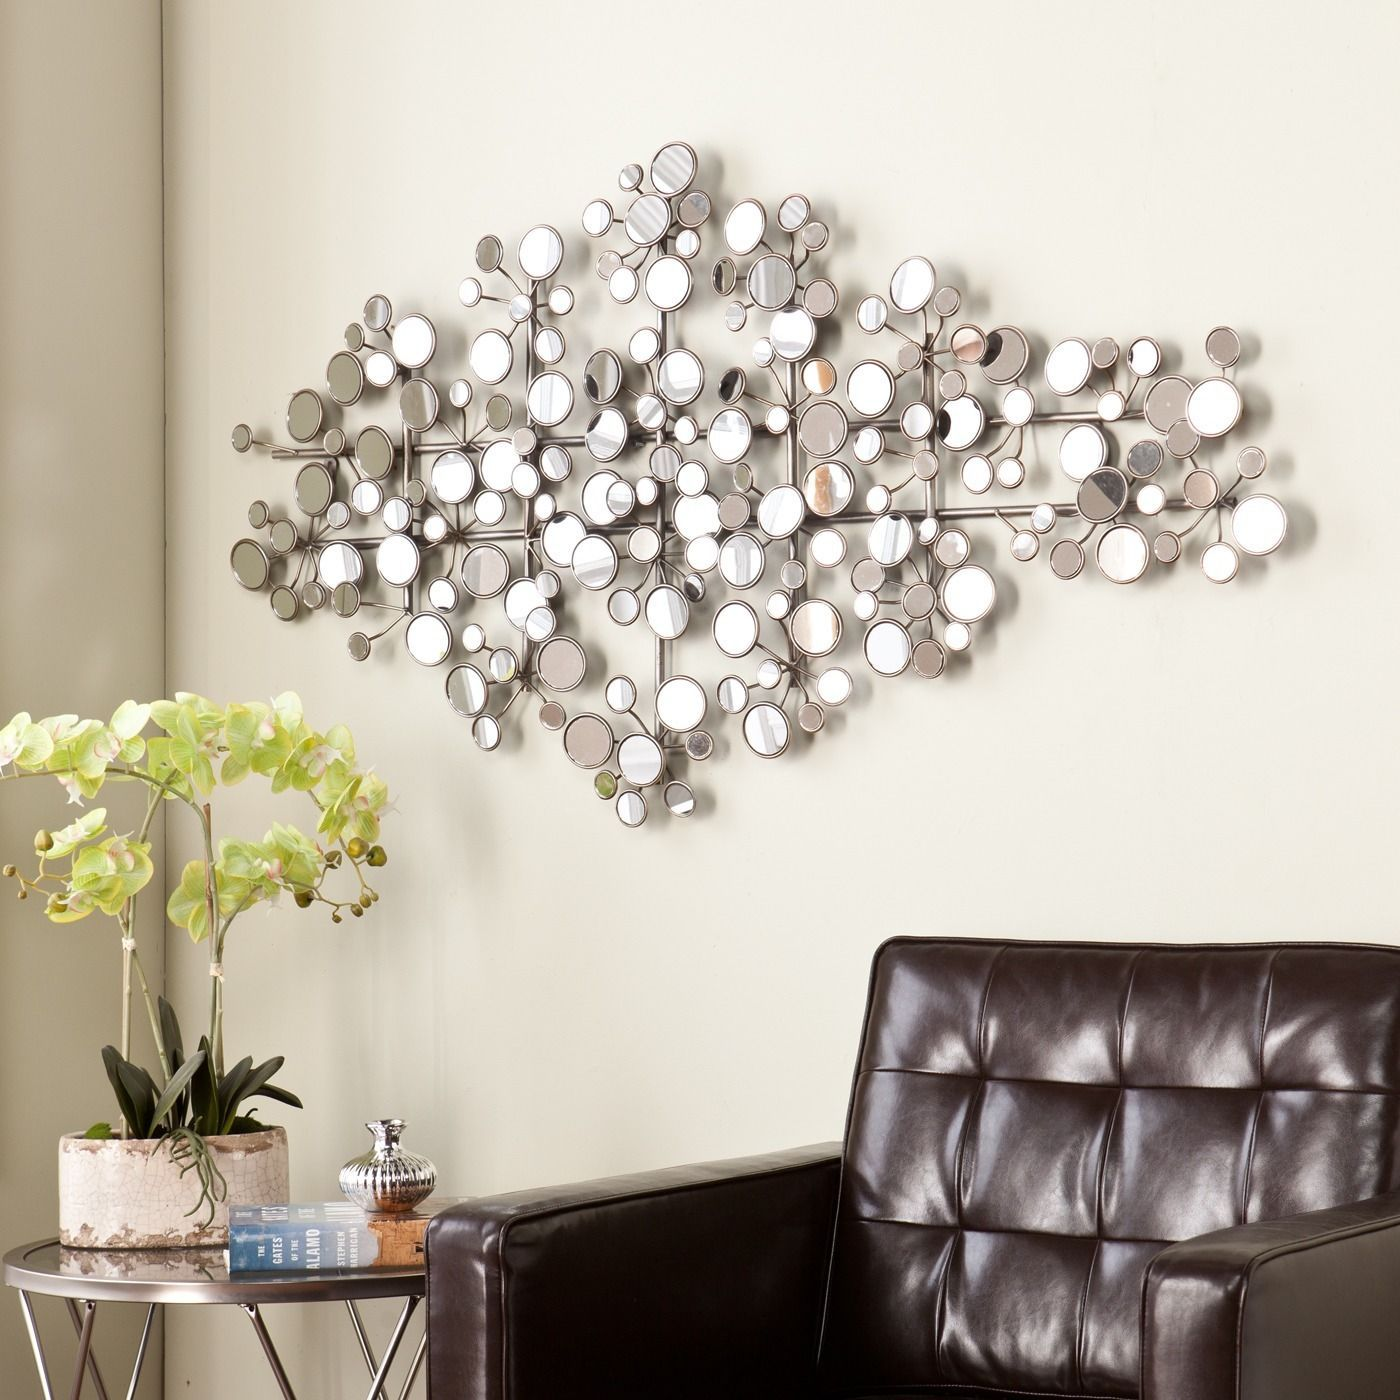 Mirror Wall Sculpture harper blvd olivia mirrored metal wall sculpture - 15994538